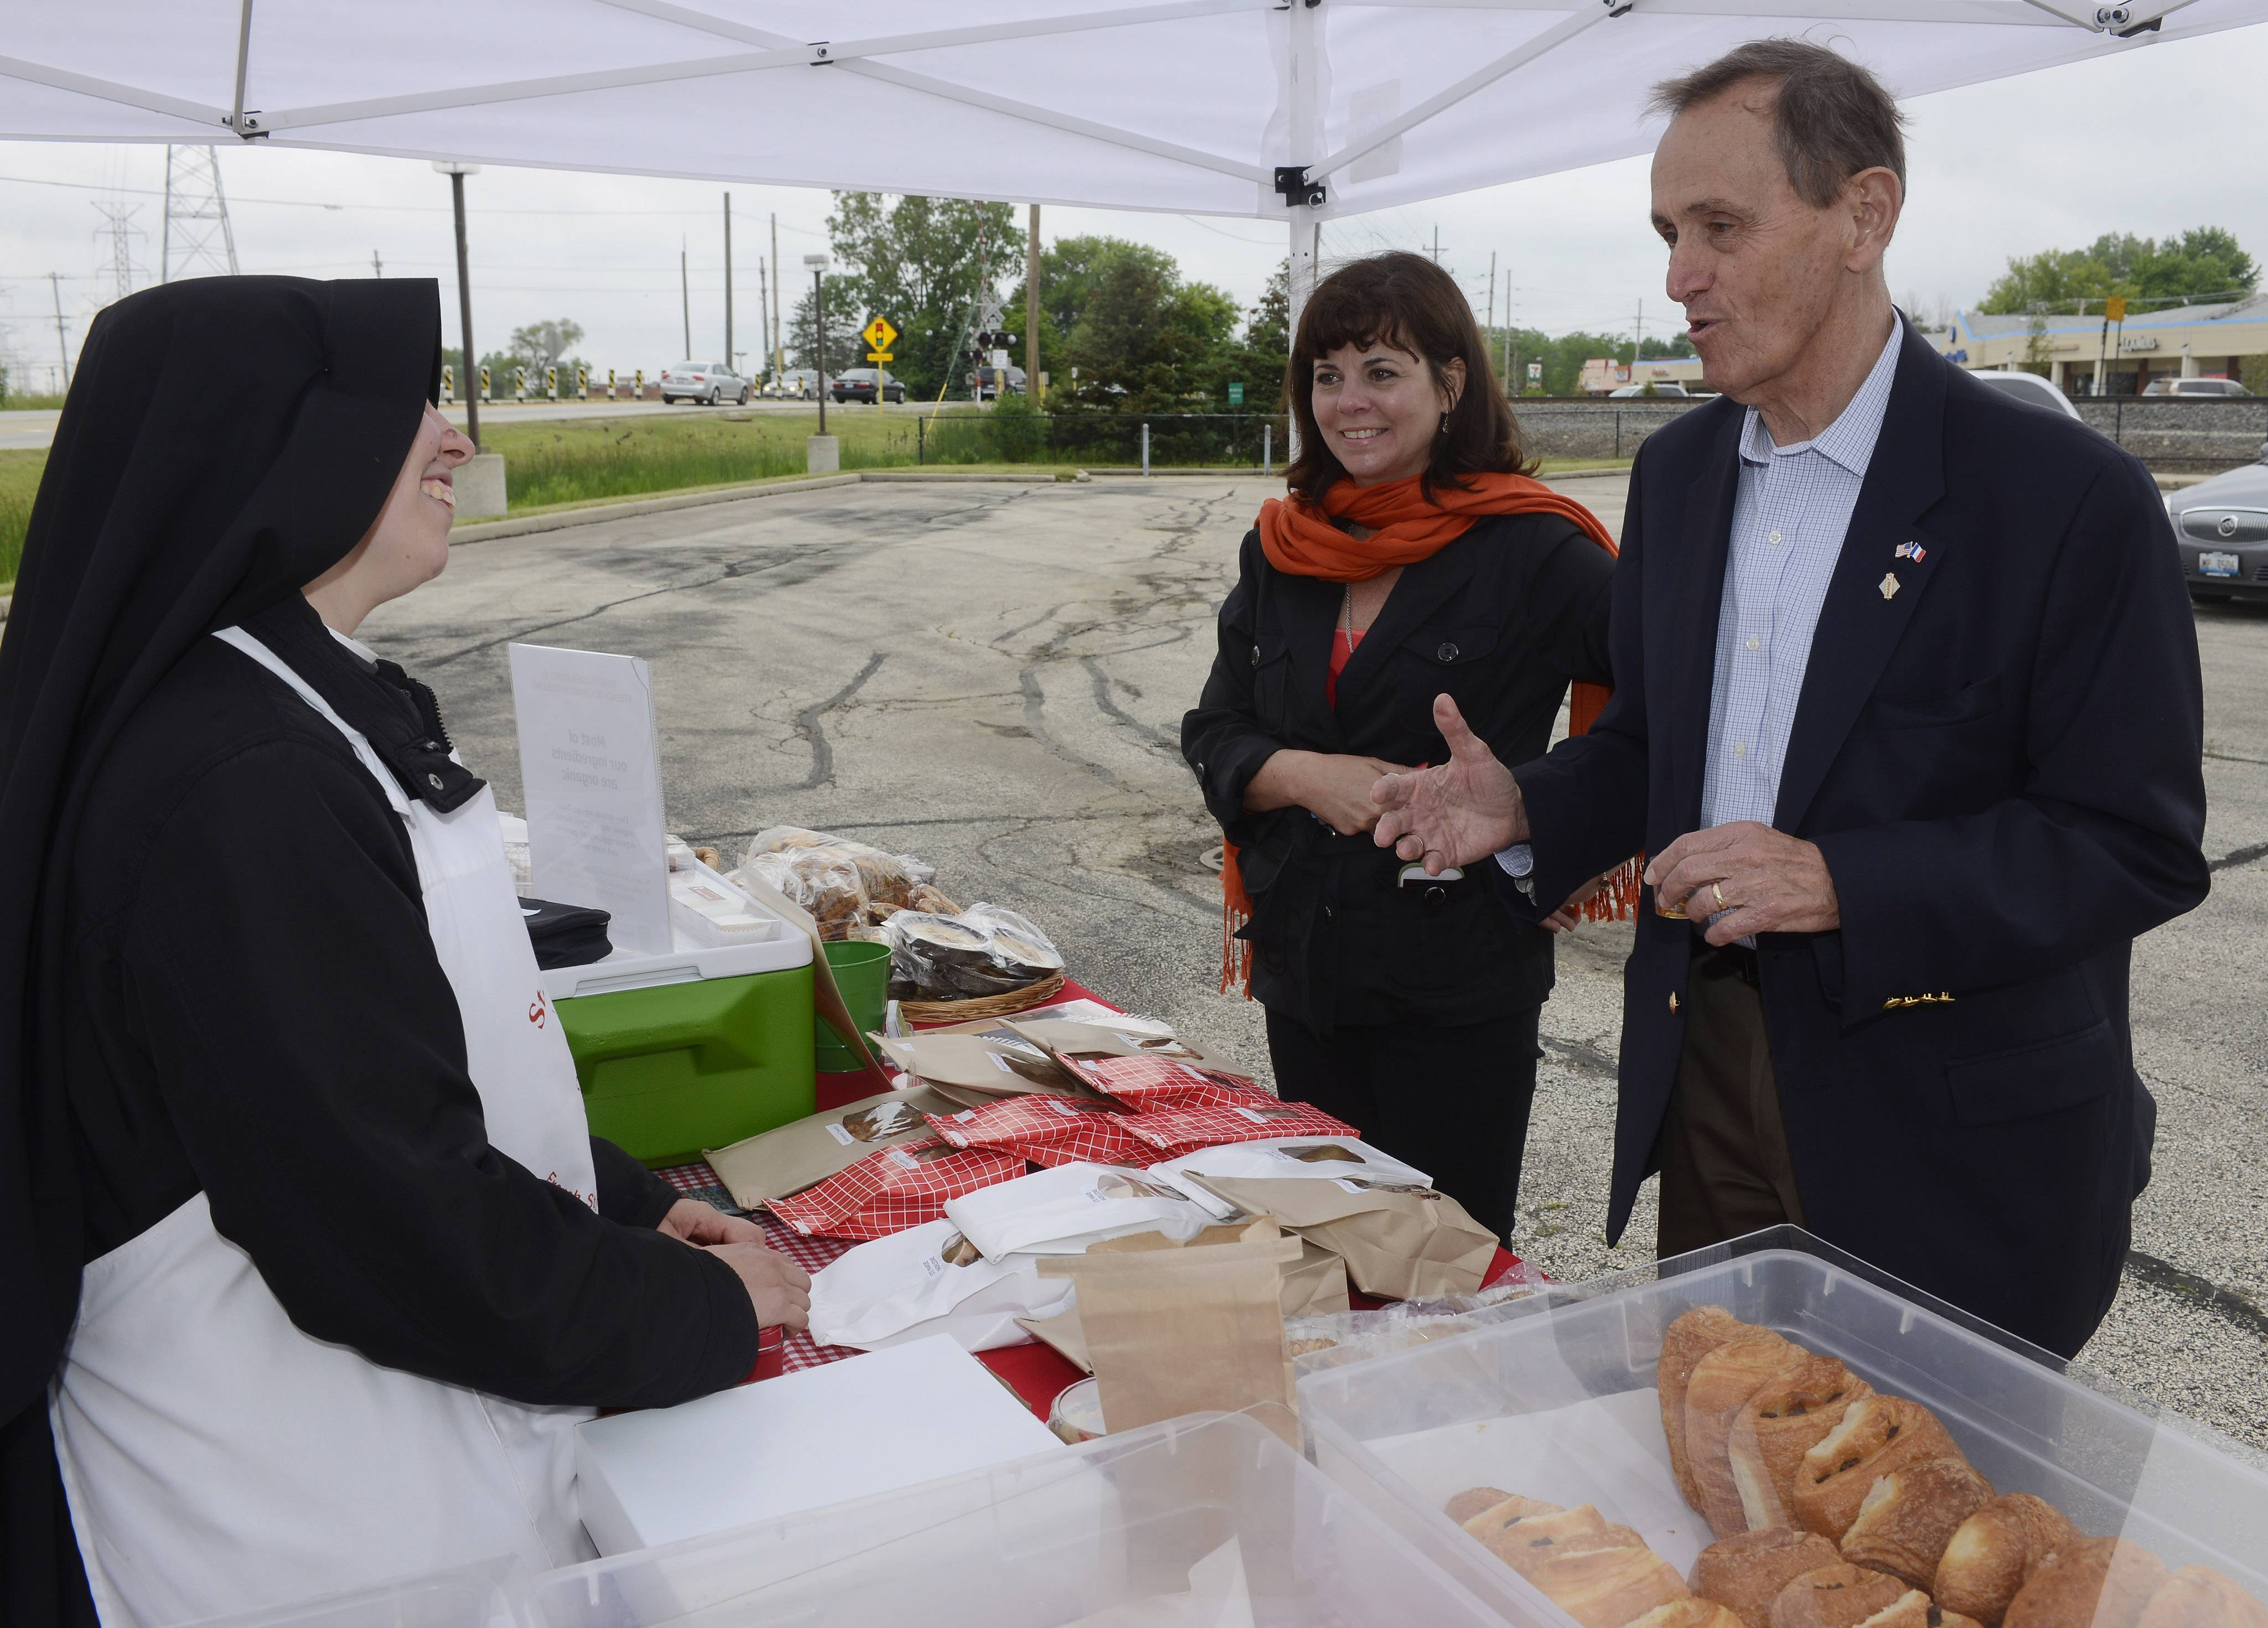 Prospect Heights Mayor Nick Helmer and Leslie Cahill, middle, of French Market of Chicago LLC visit with Sister Marie of St. Rogers Abbey as she sells baked goods Wednesday during the French Market at the Prospect Heights Metra station parking lot.